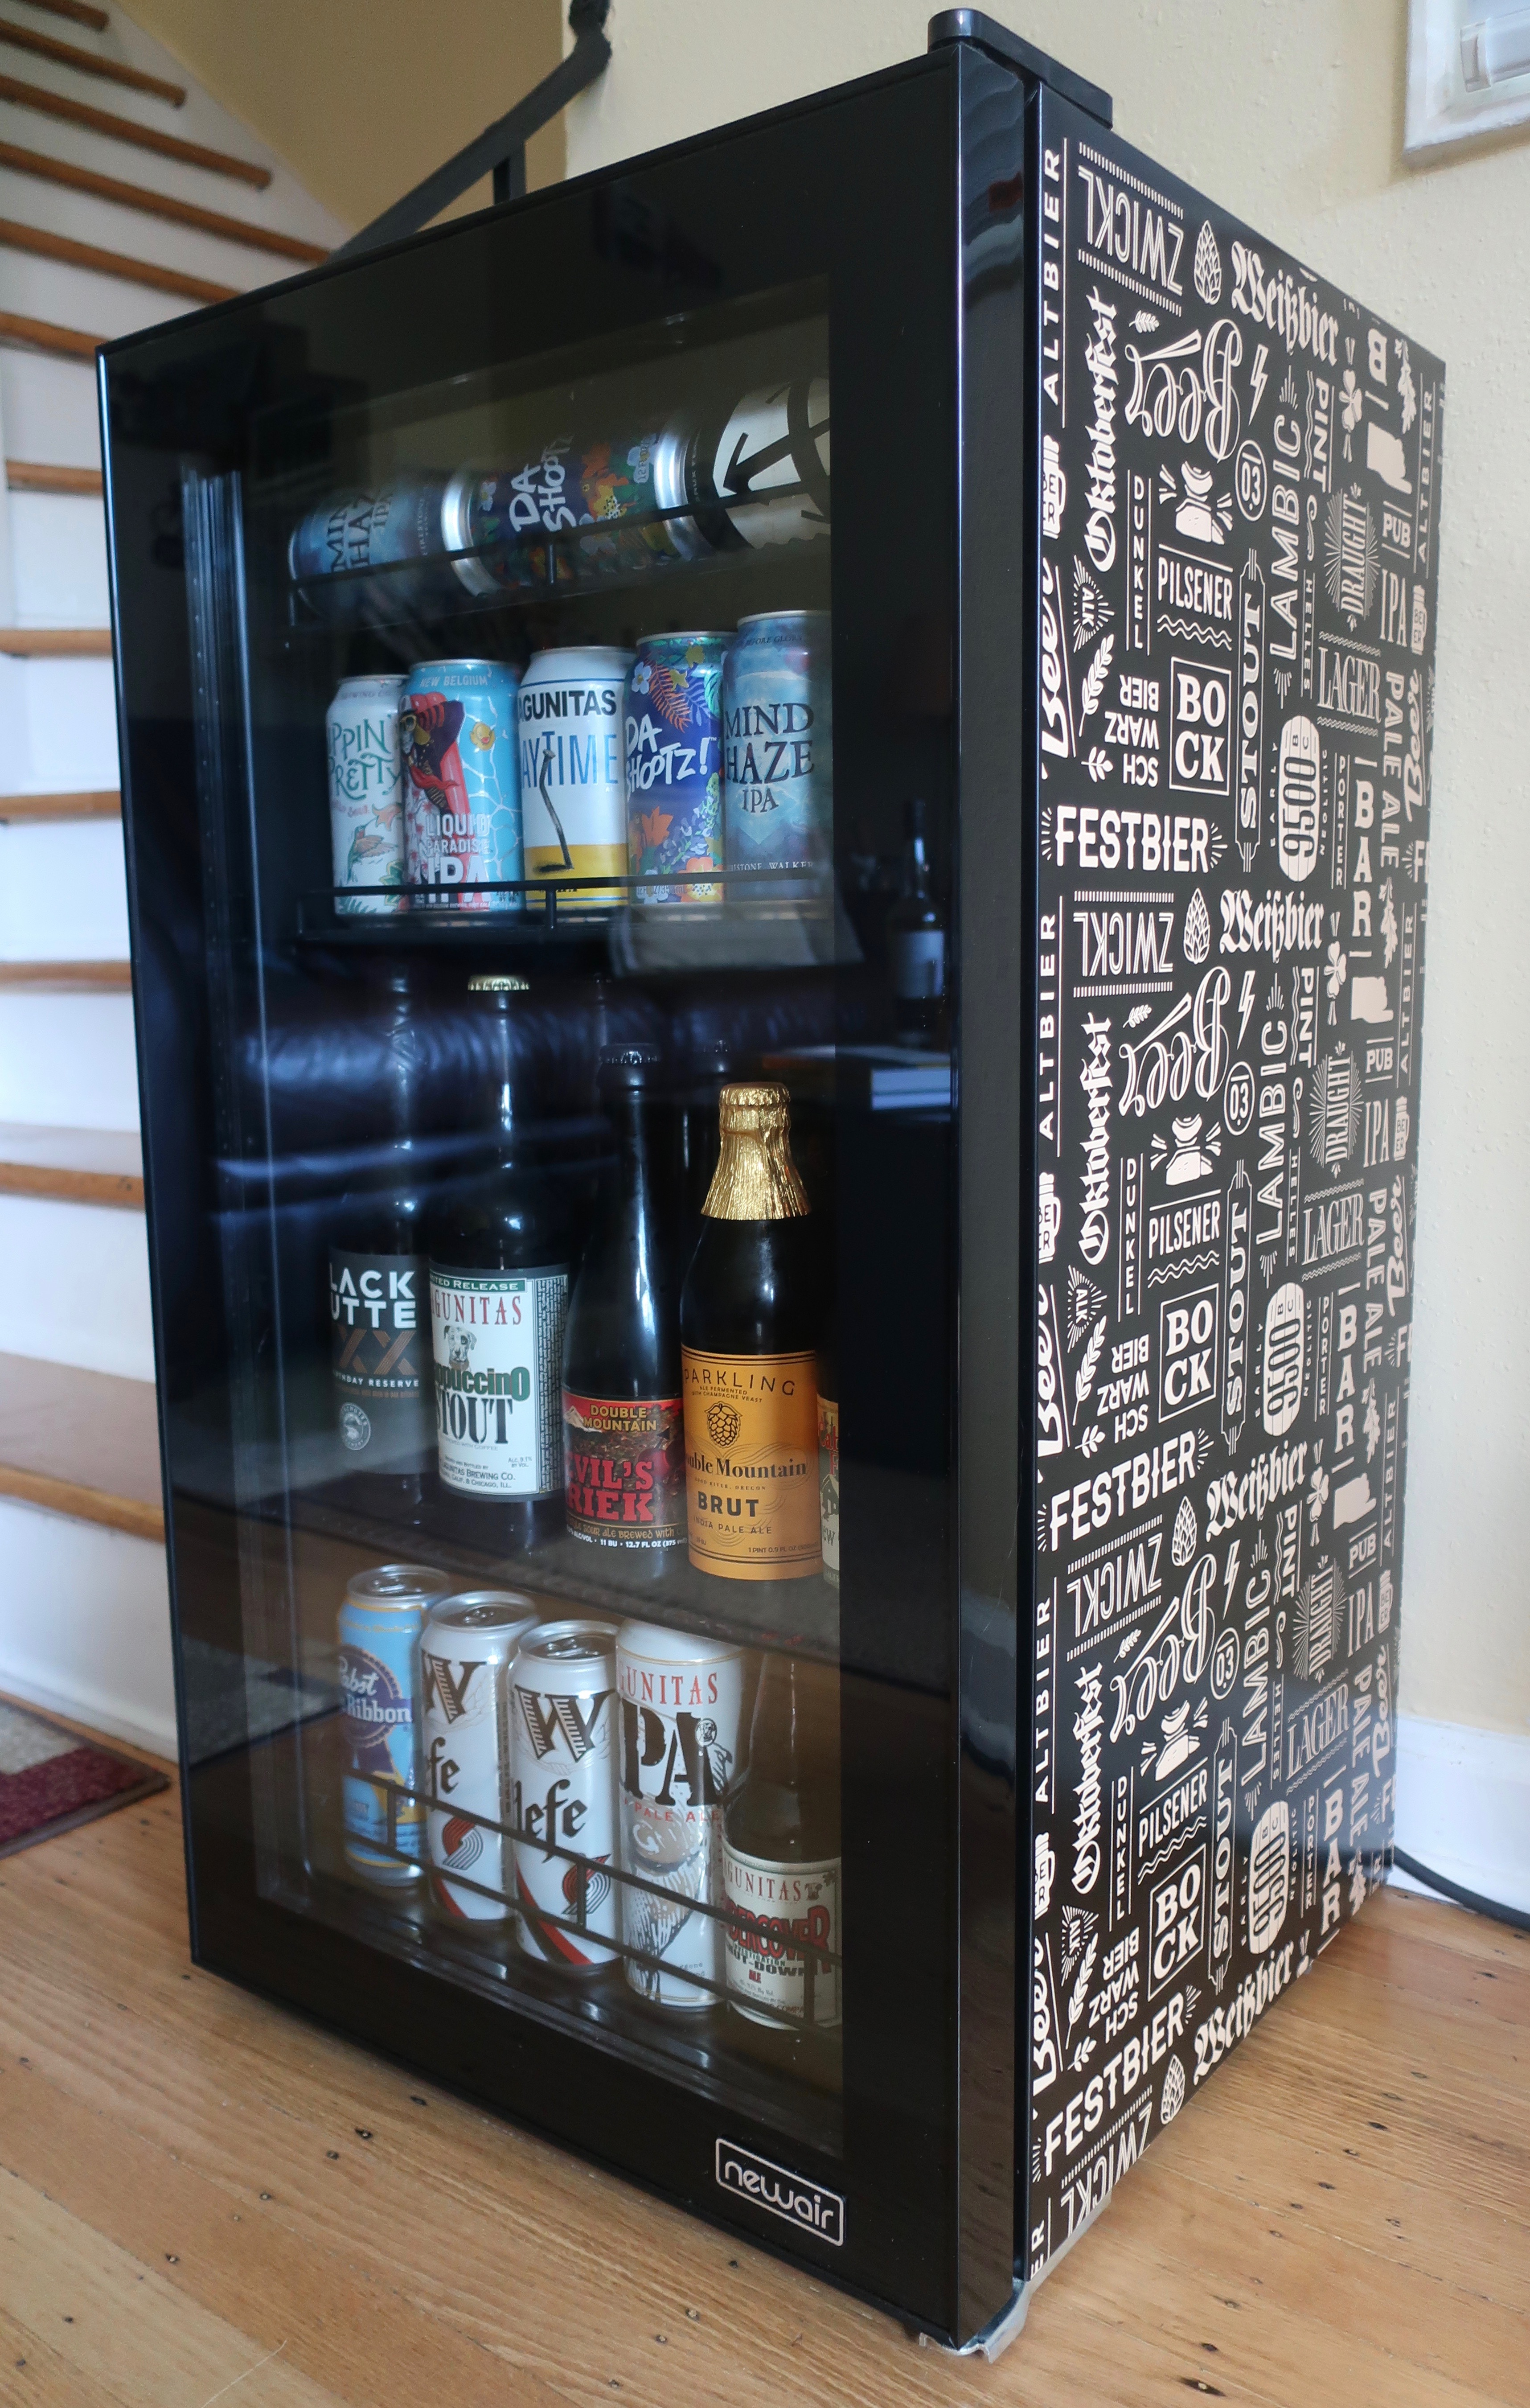 The NewAir Beers of the World Custom Beer Fridge is a great addition to keep your beers chilled.